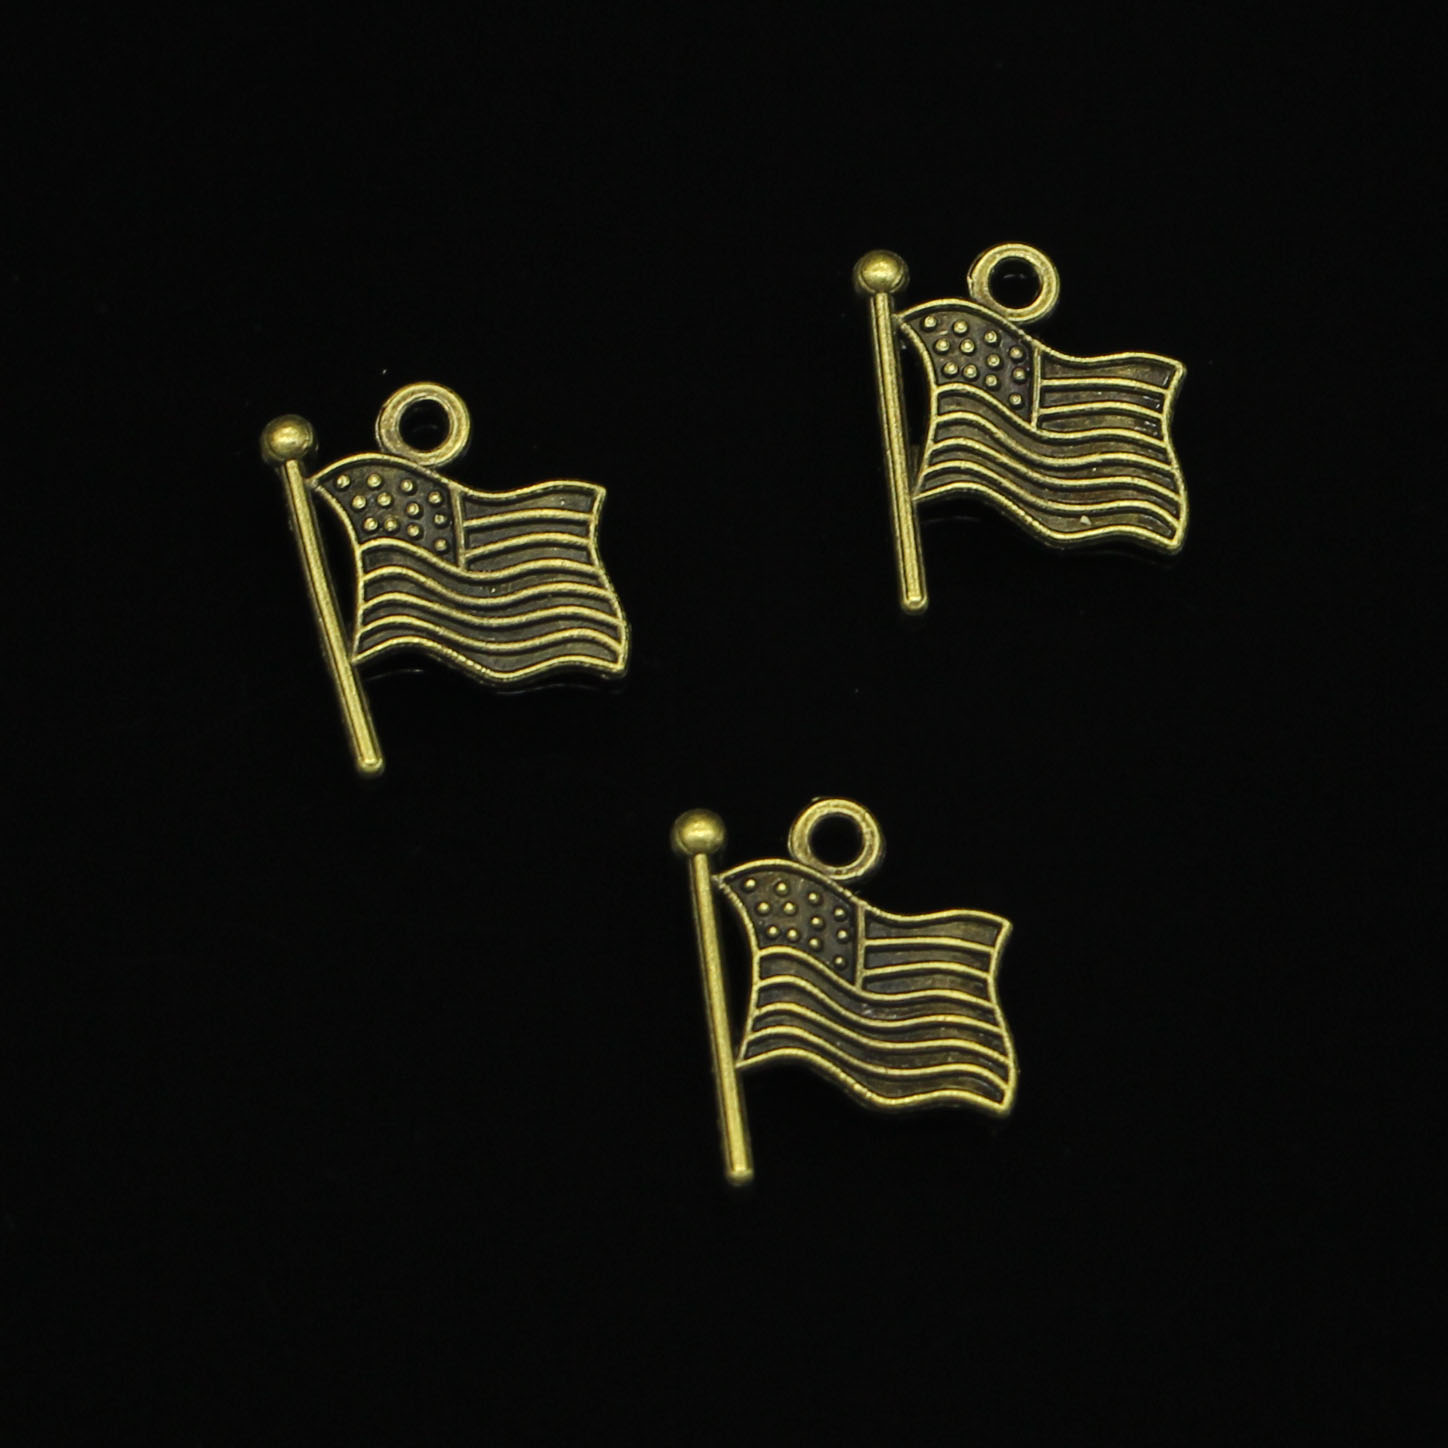 25pcs Antique Bronze usa flag Charms for DIY Bracelets Jewelry Findings 12mm